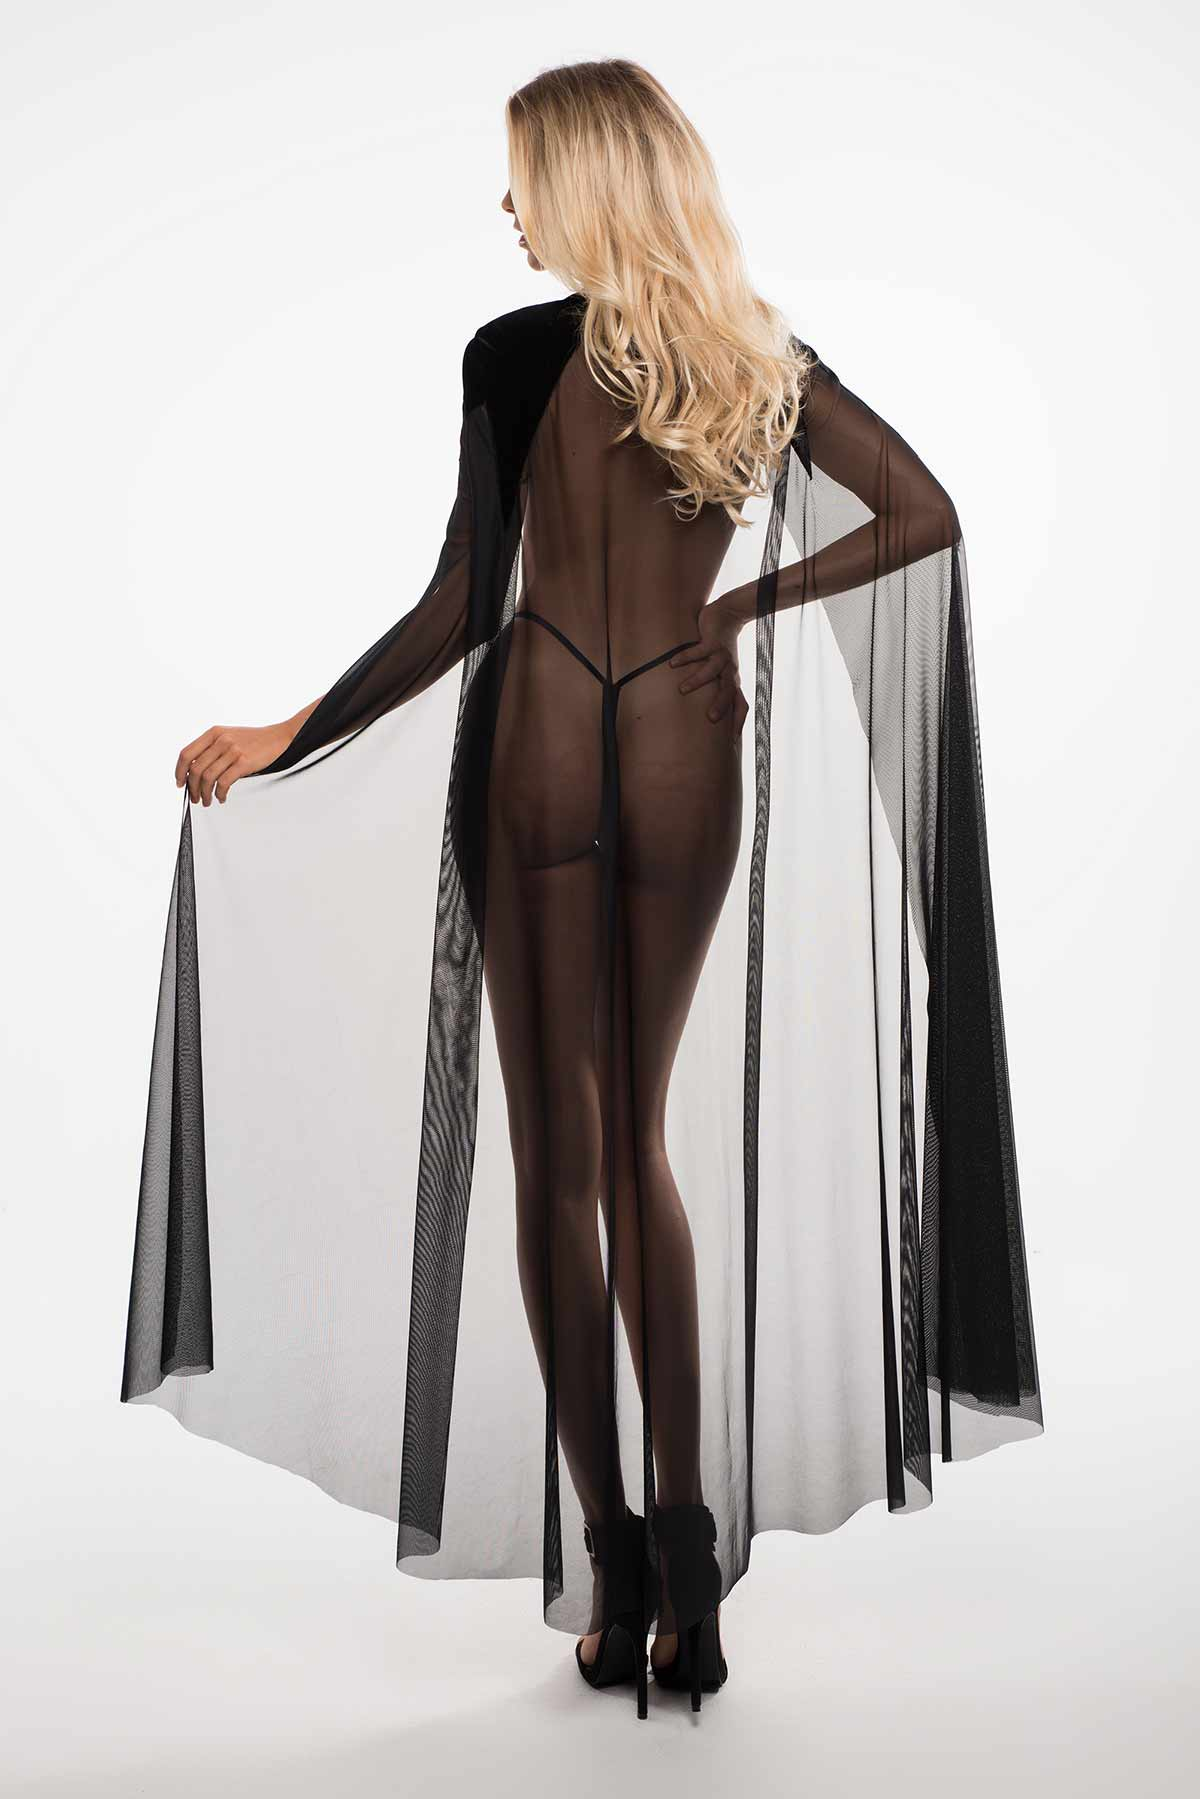 The Kiss Me Again Sheer Cape